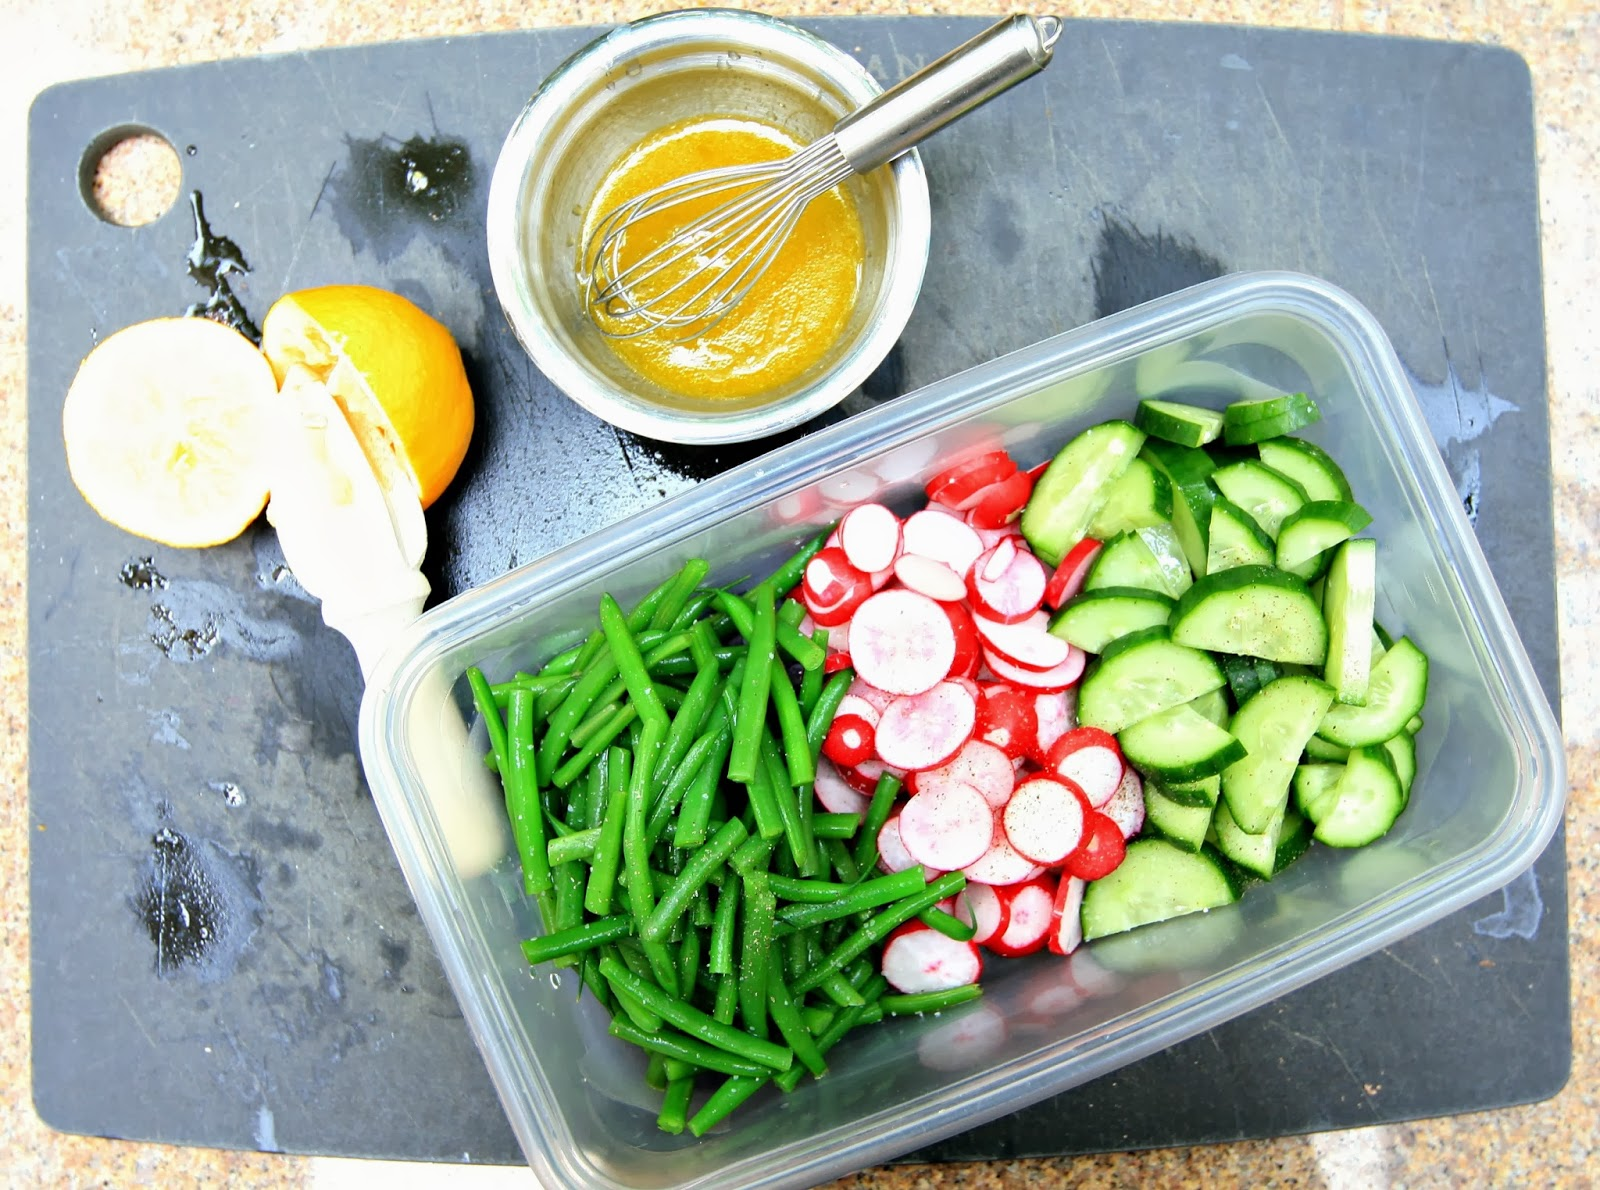 #lovehealthyme #wwsponsored weight watchers simple start fresh veggies easy vegetable salad